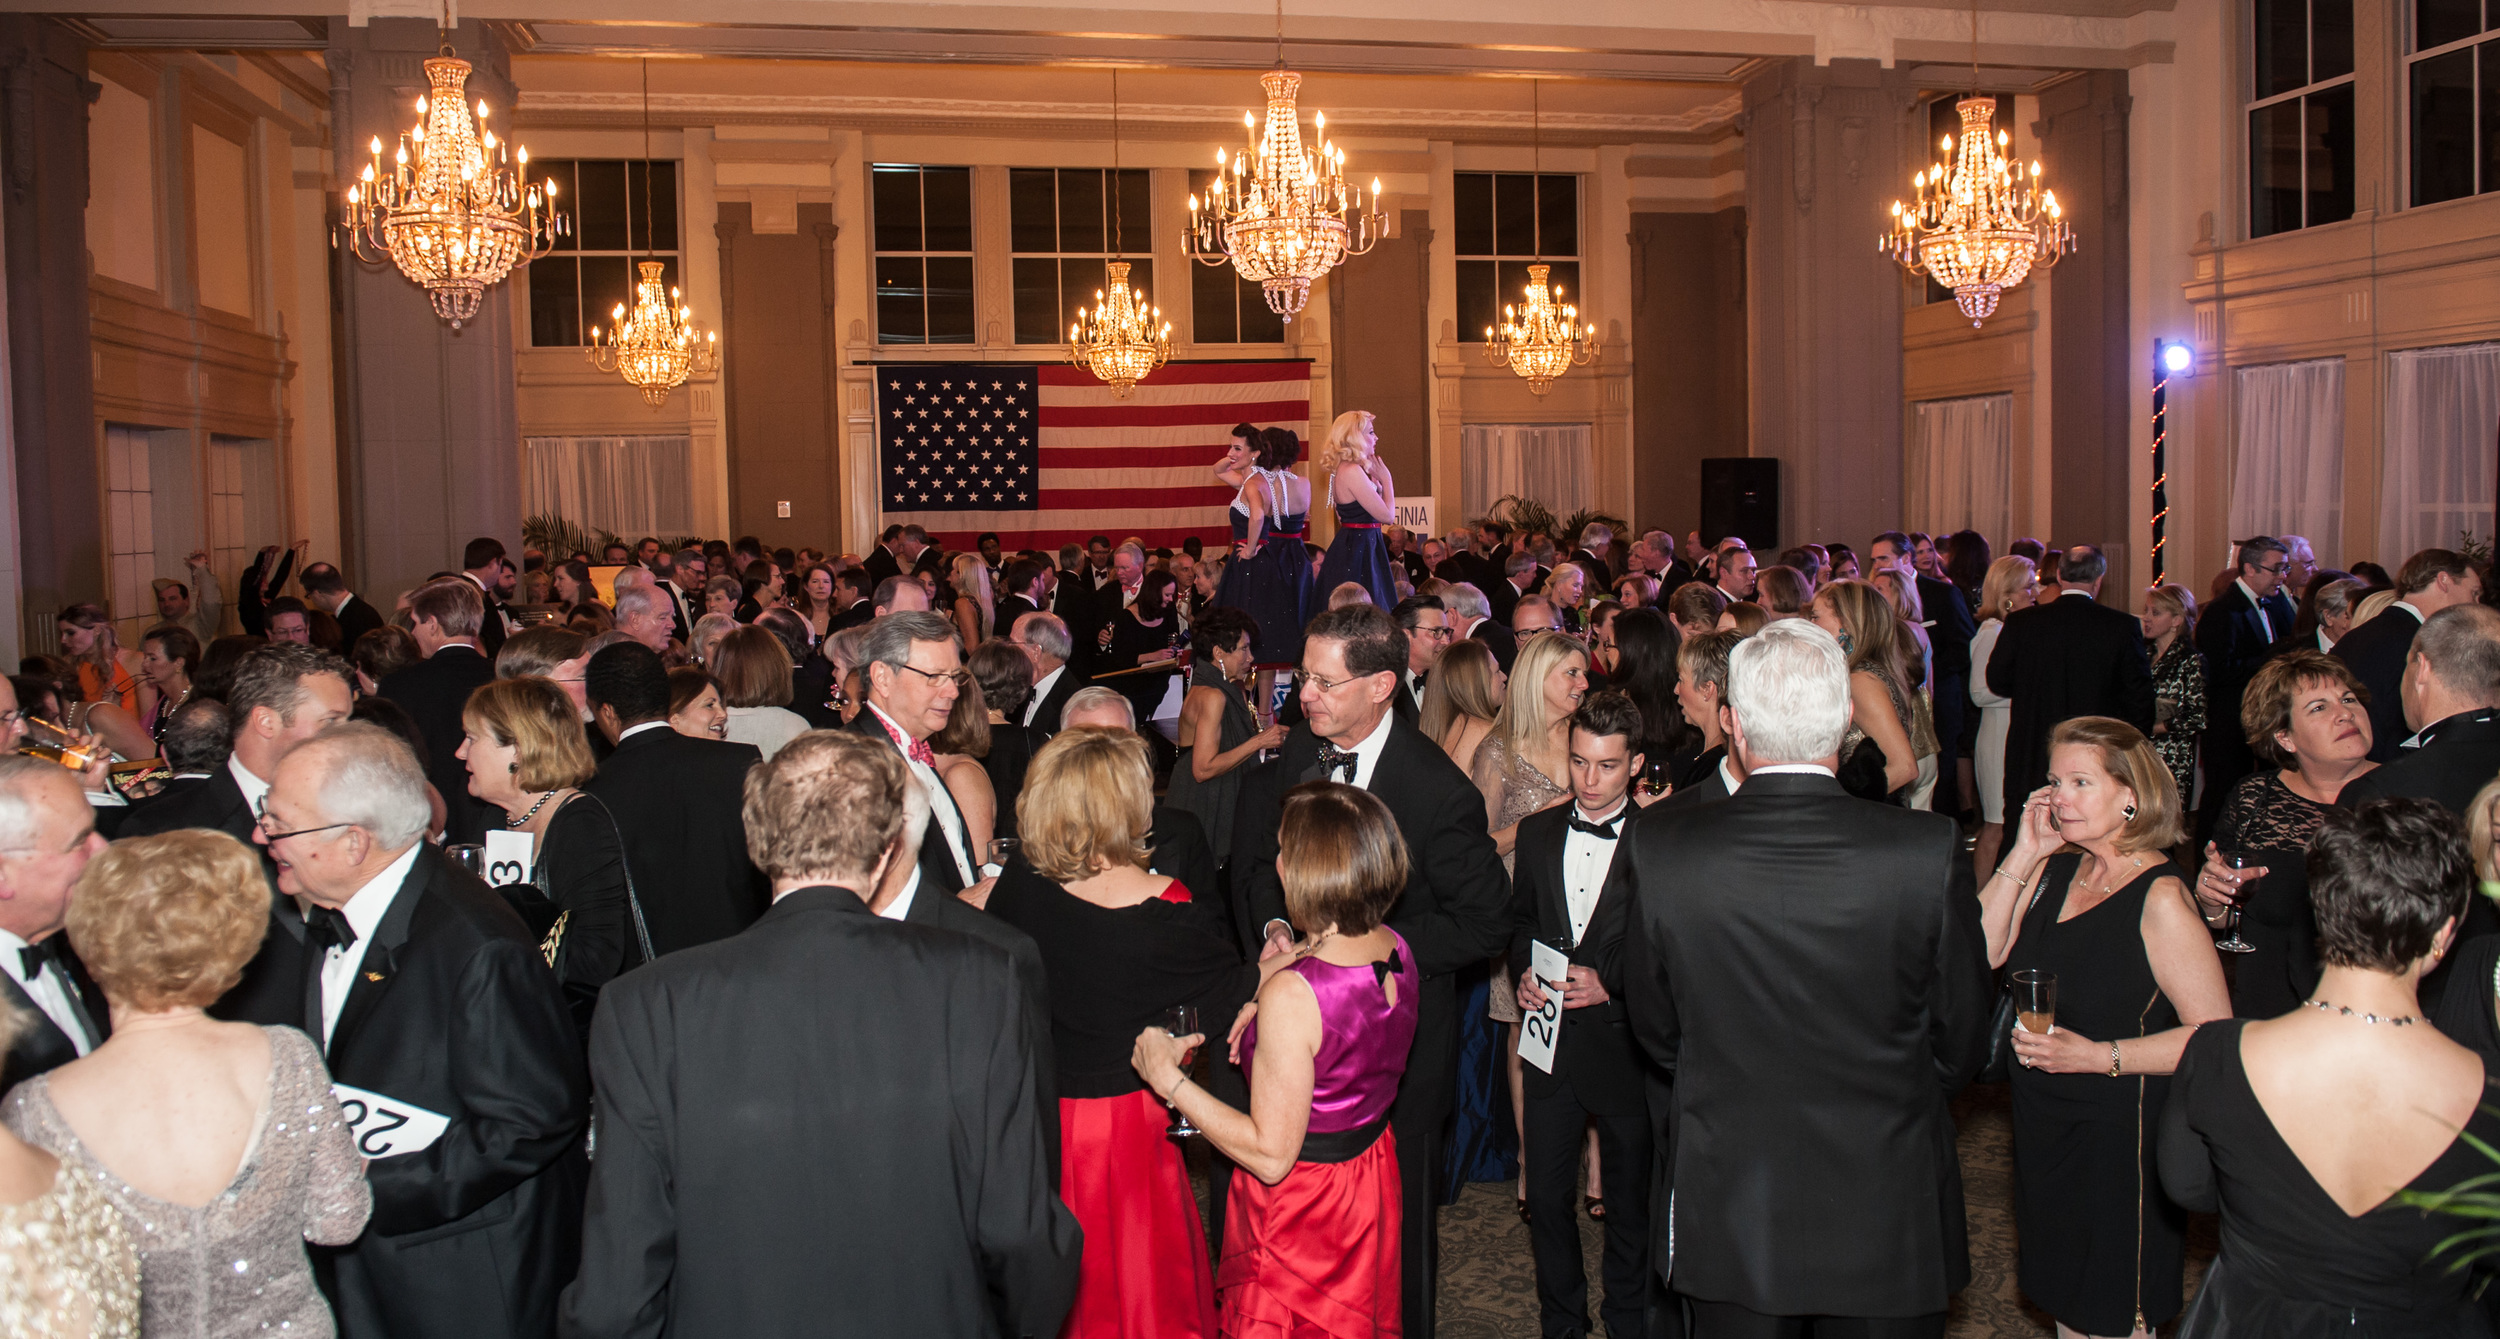 The Marshall Ballroom, full of excited guests bidding away during the silent auction!